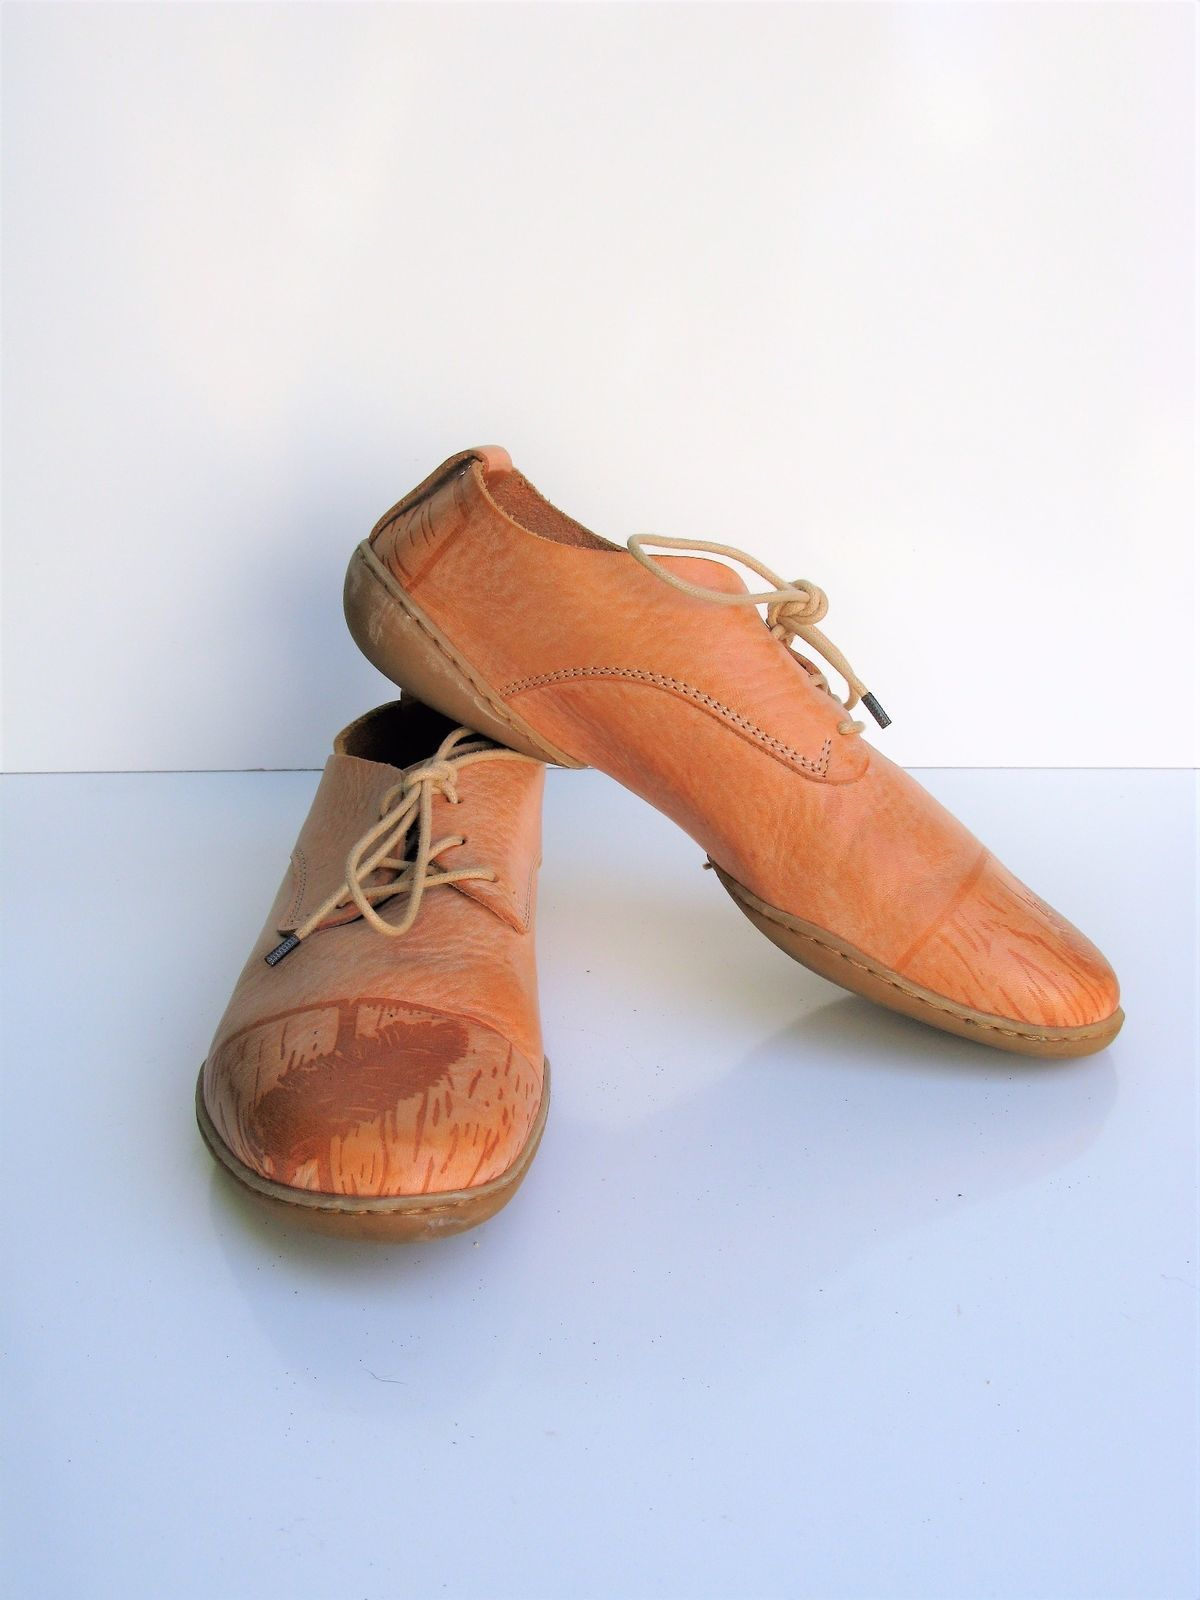 Oxford Lace up Shoes Trippen Feather Etched Leather Lace up Oxford 37 $450 MSRP